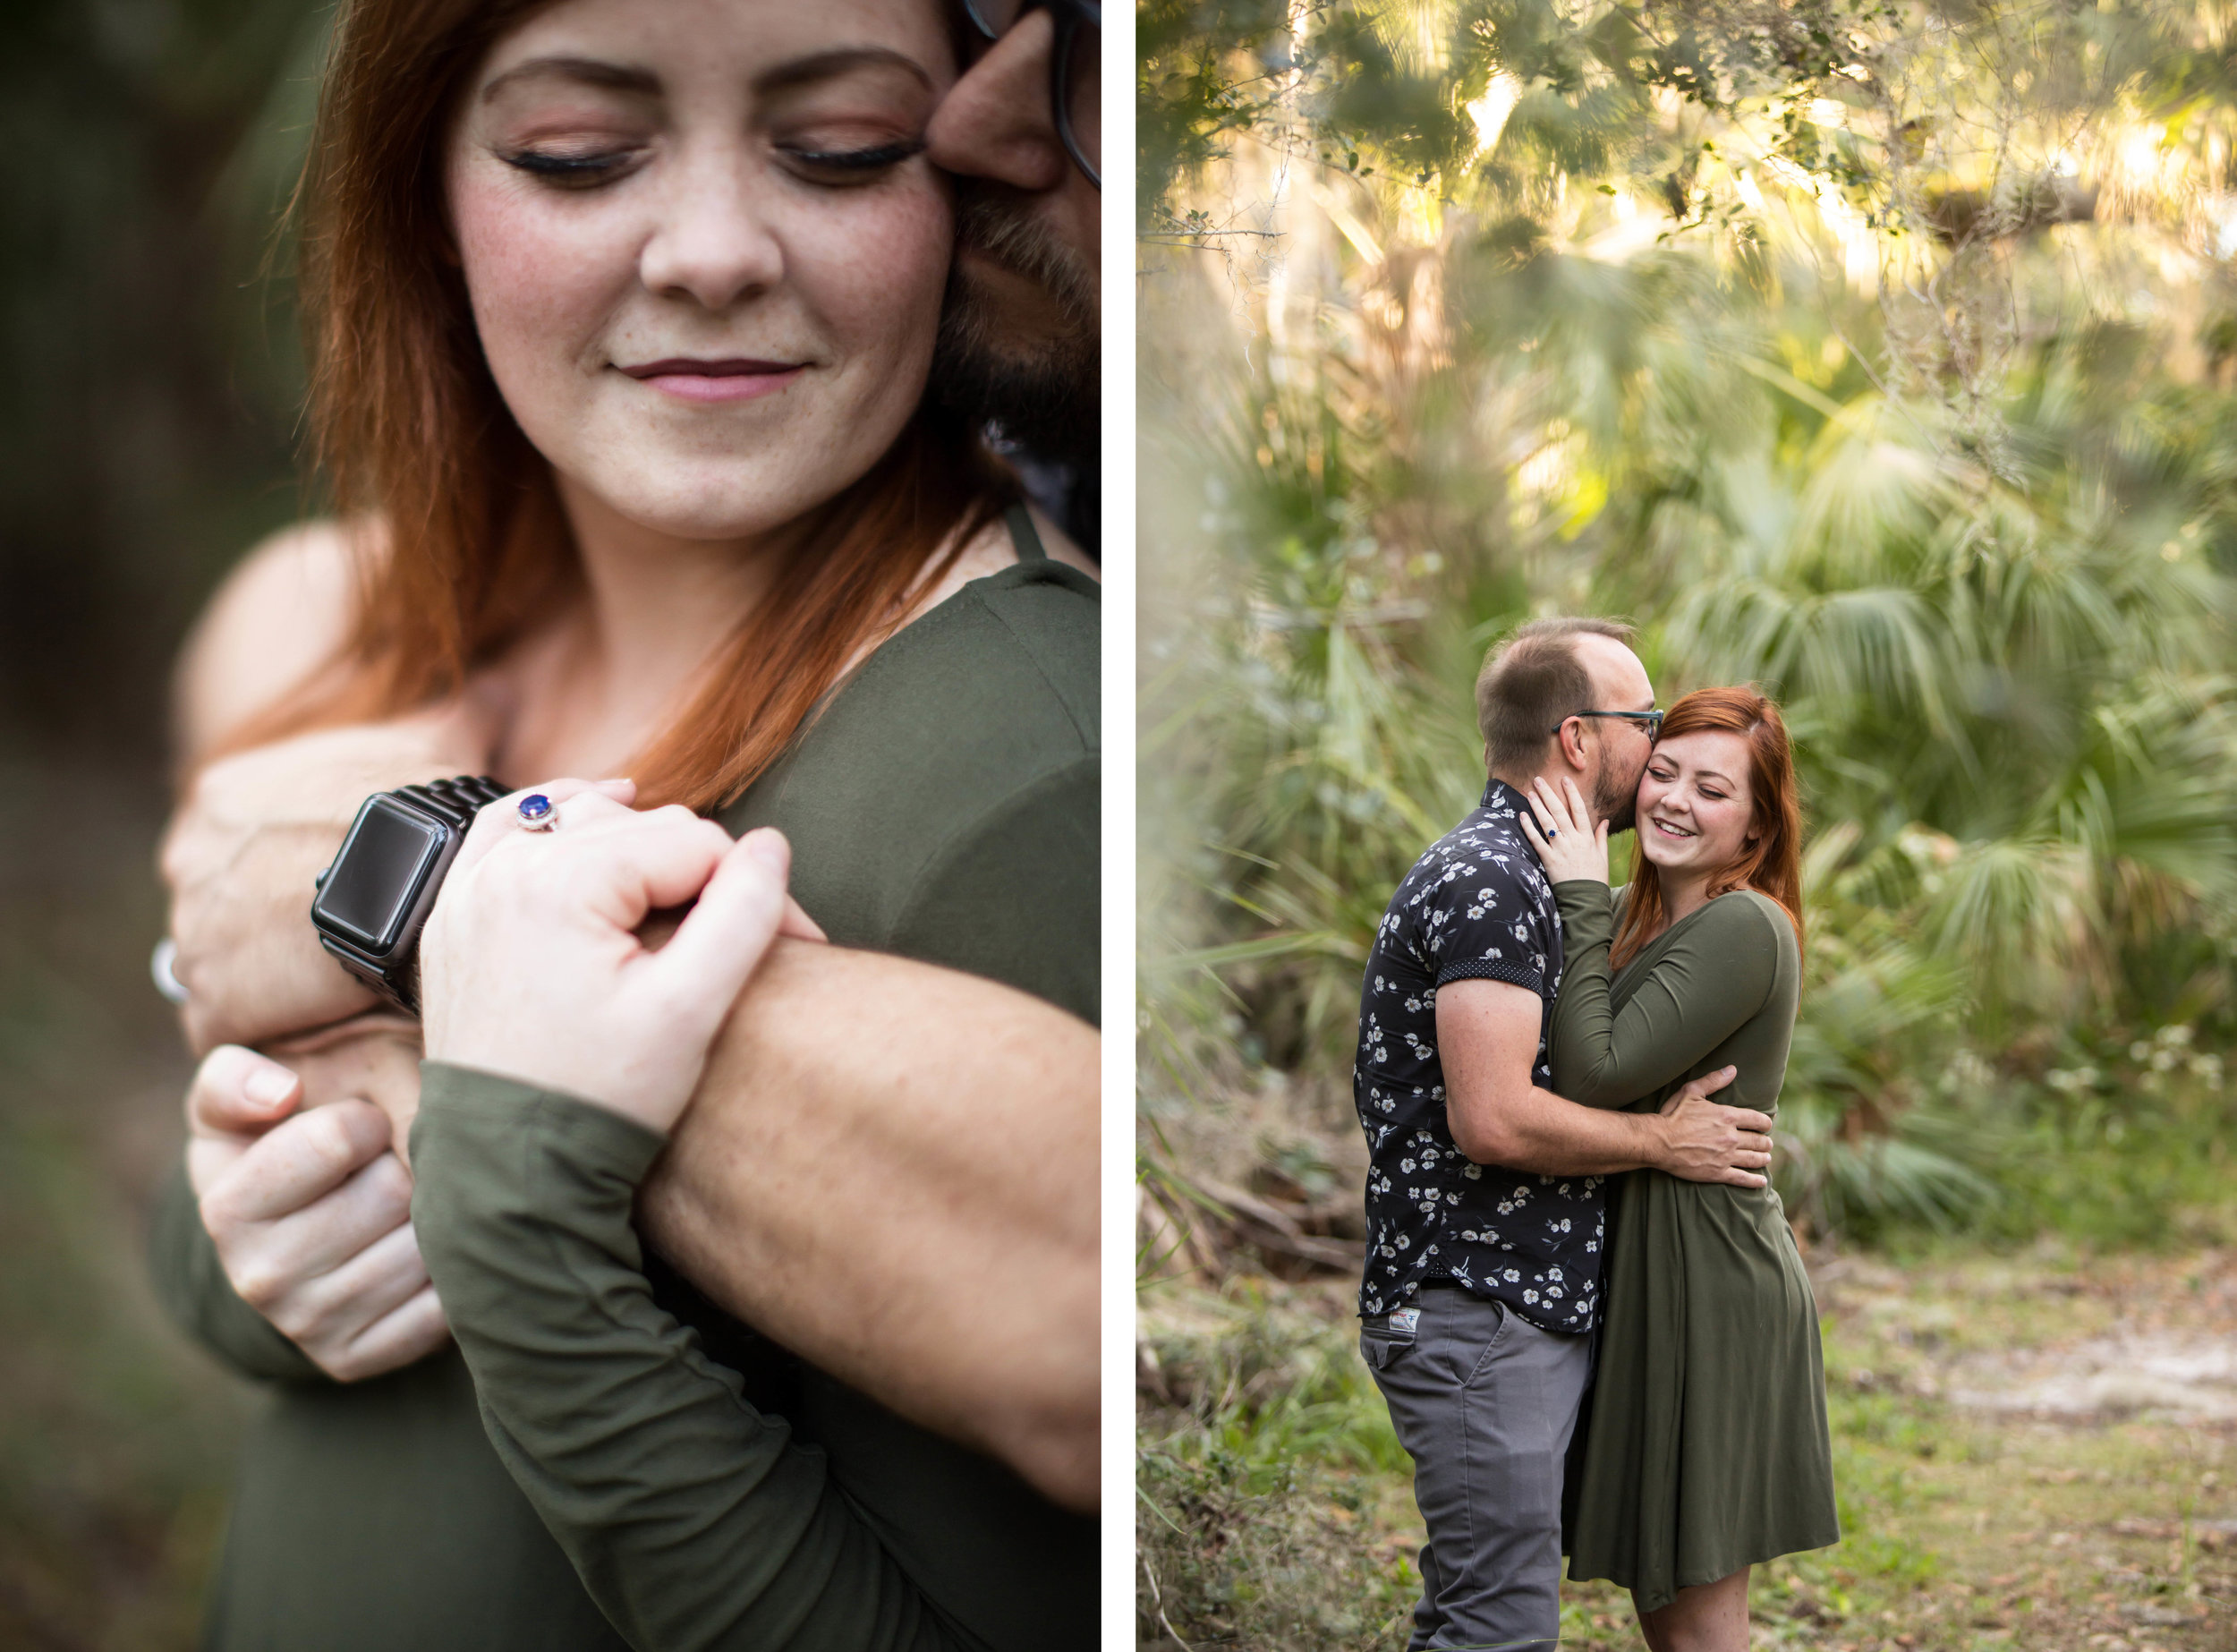 Marble_Falls_Anniversary_Photographer_Jenna_Petty_Ormond_Beach_Florida_11.jpg